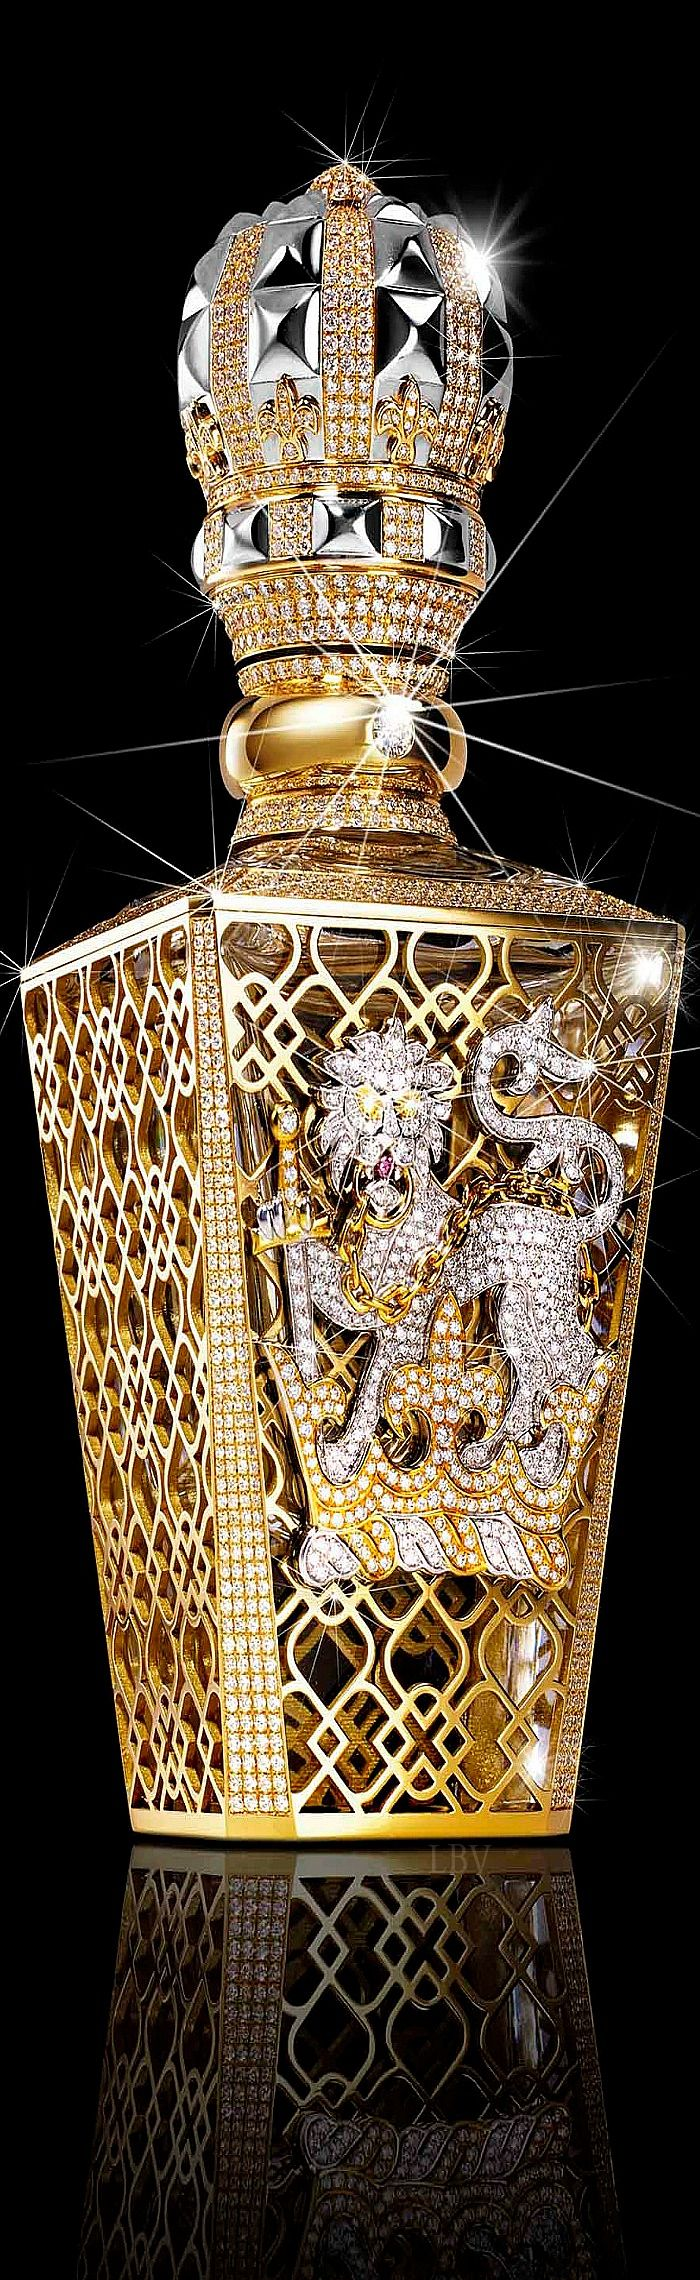 The World's Most Expensive Perfume♥✤Clive Christian No 1 Passant Guardant. 24 Carat Gold with price starting at $250,000.